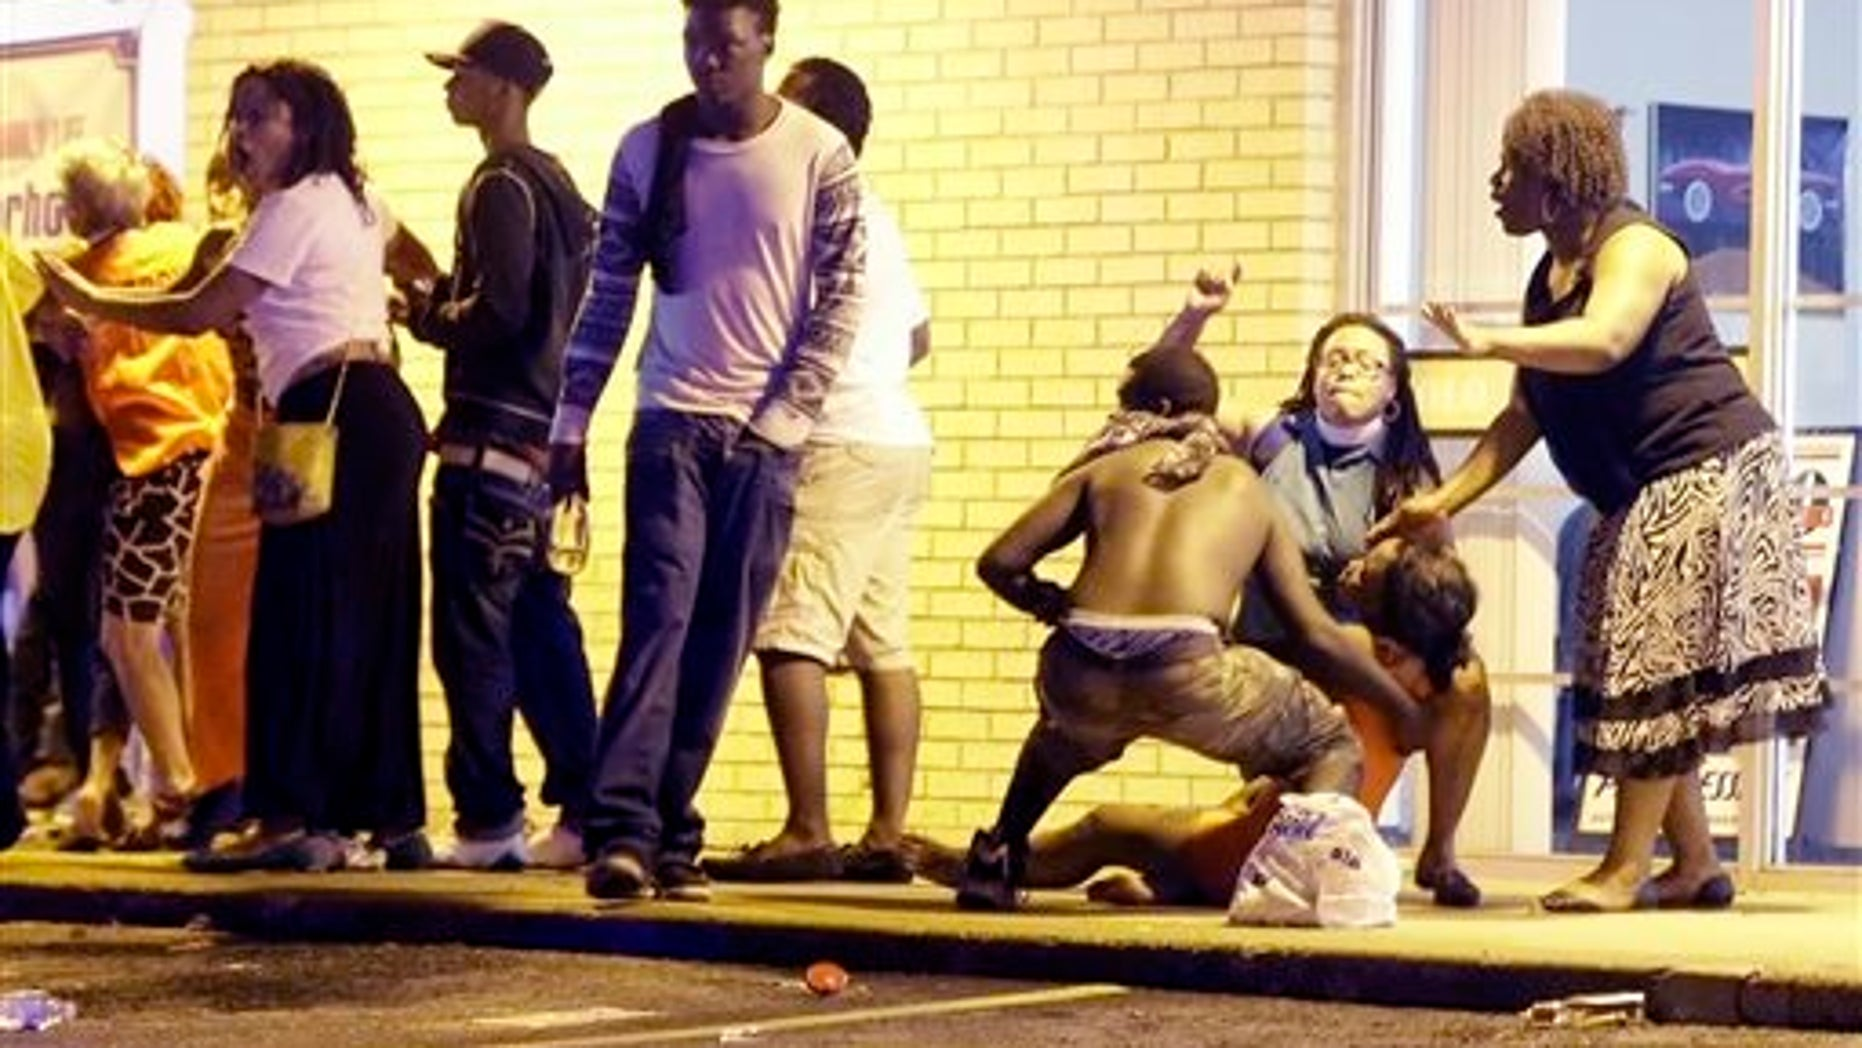 People come to the aid of a distraught woman after gunshots were fired near a protest in Ferguson, Mo., Sunday, Aug. 9, 2015. The one-year anniversary of Michael Brown's death in Ferguson began with a march in his honor and ended with a protest that was interrupted by gunfire. (AP Photo/Jeff Roberson)